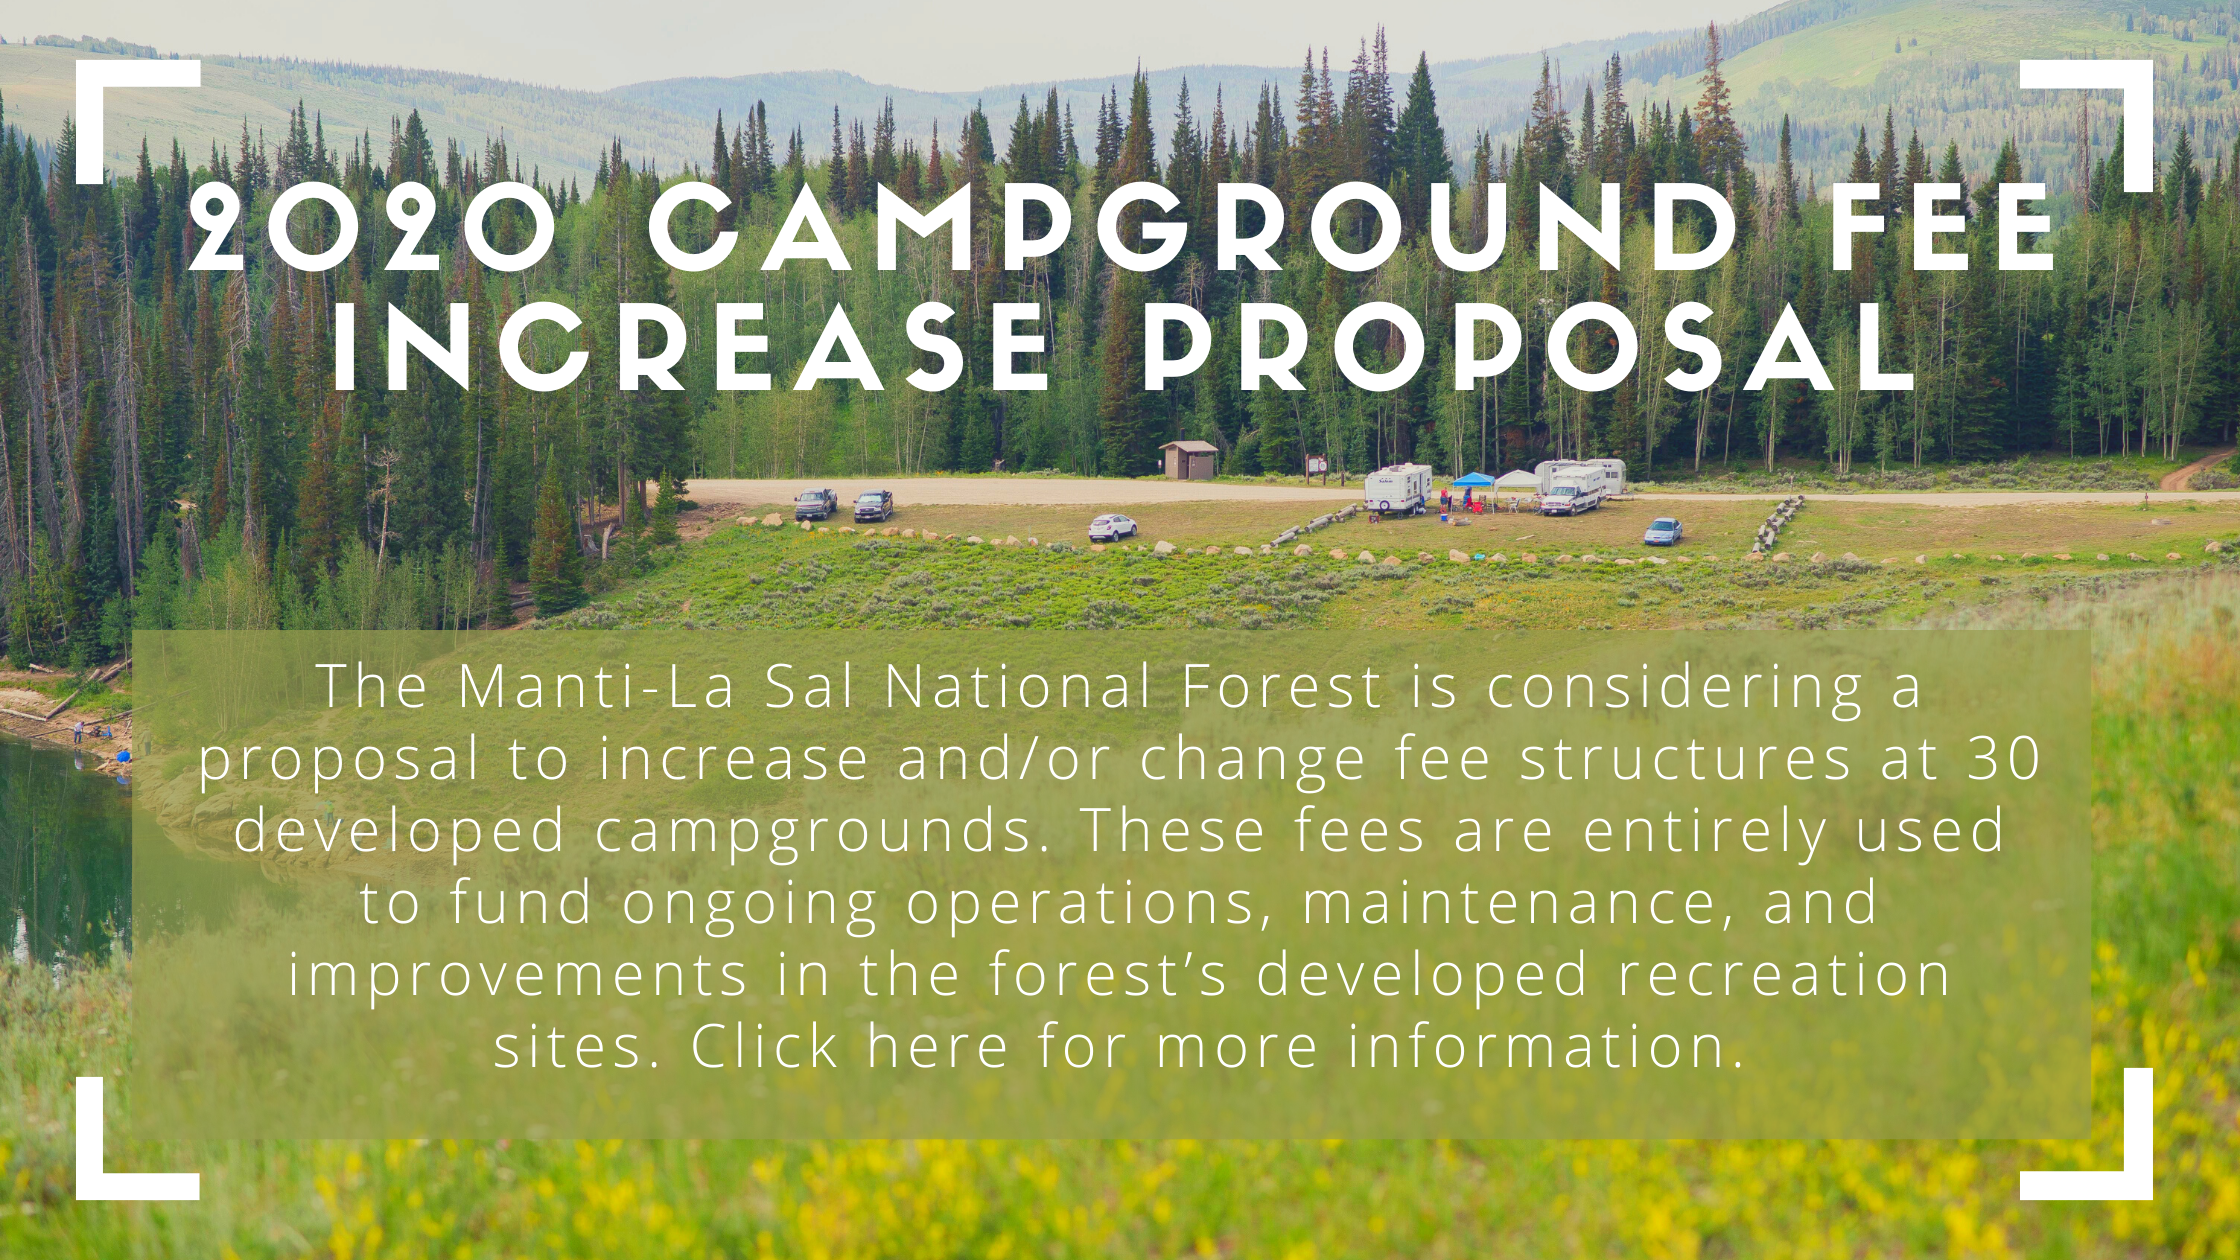 Campground Fee Change Proposal